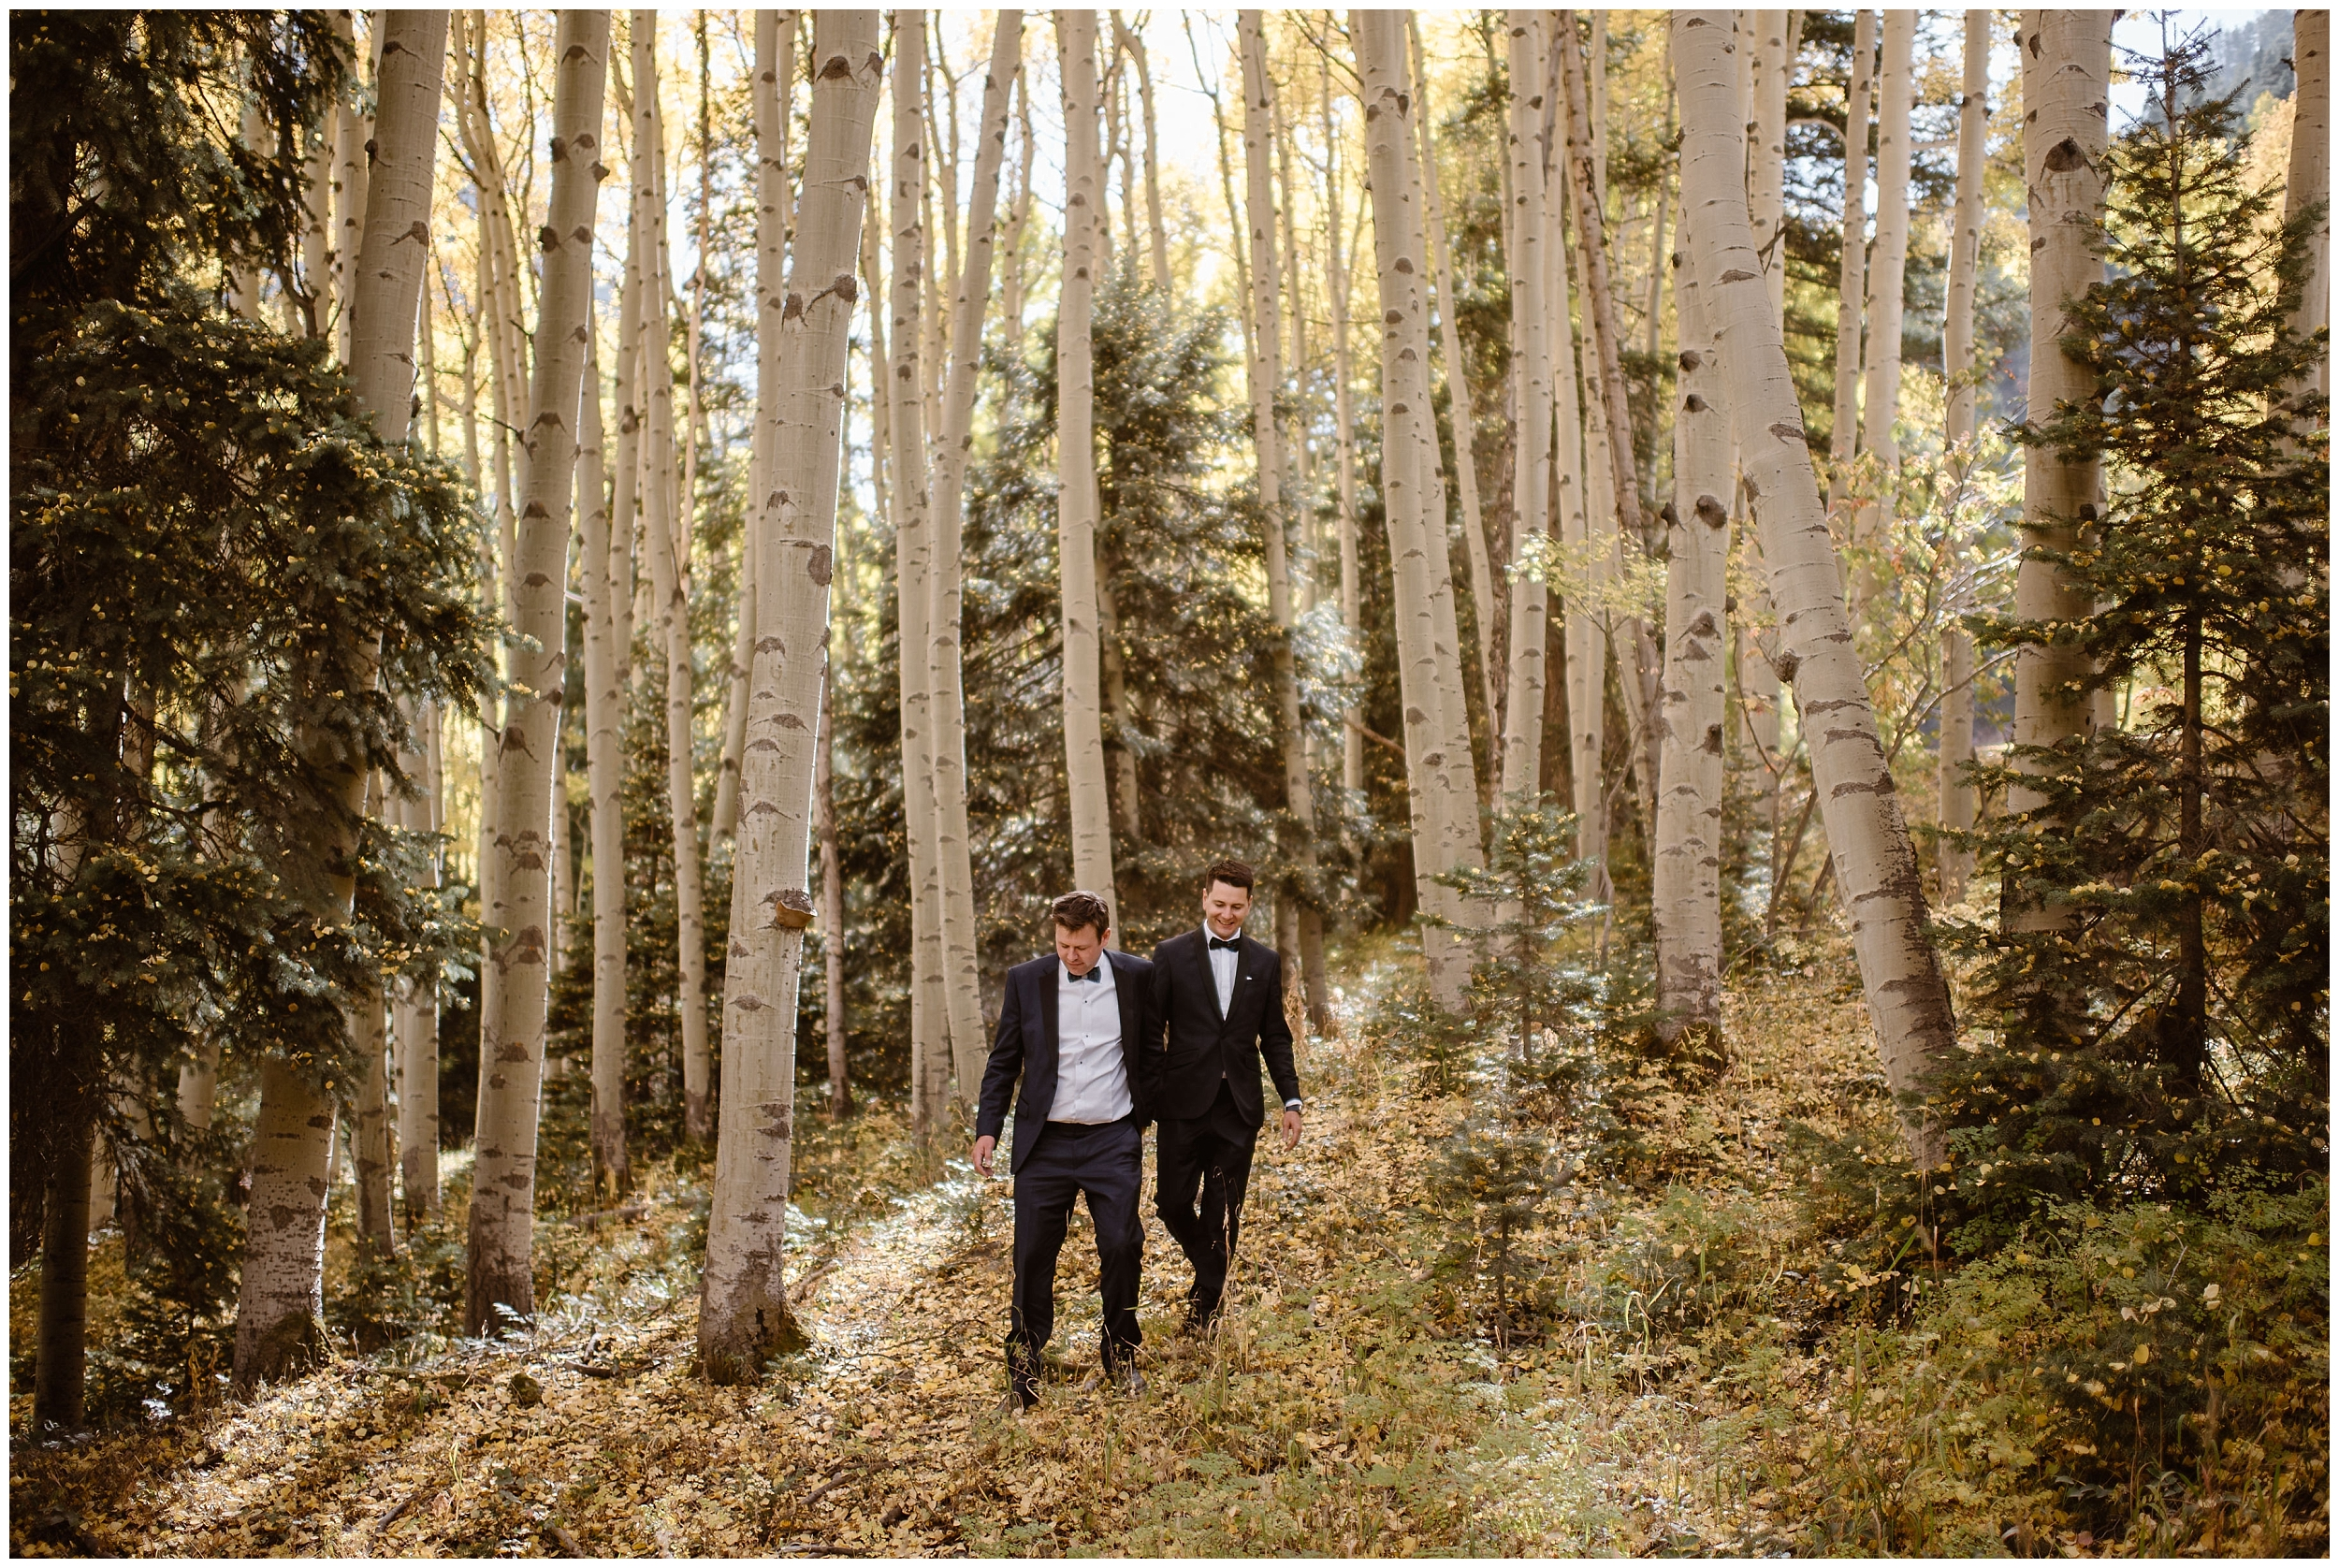 The two grooms walk through a forest littered with golden Fall leaves that have tumbled to the ground. All around them, white aspen trees bloom even more beautiful, golden leaves. As the two take hands, they walk toward their elopement ceremony spot.